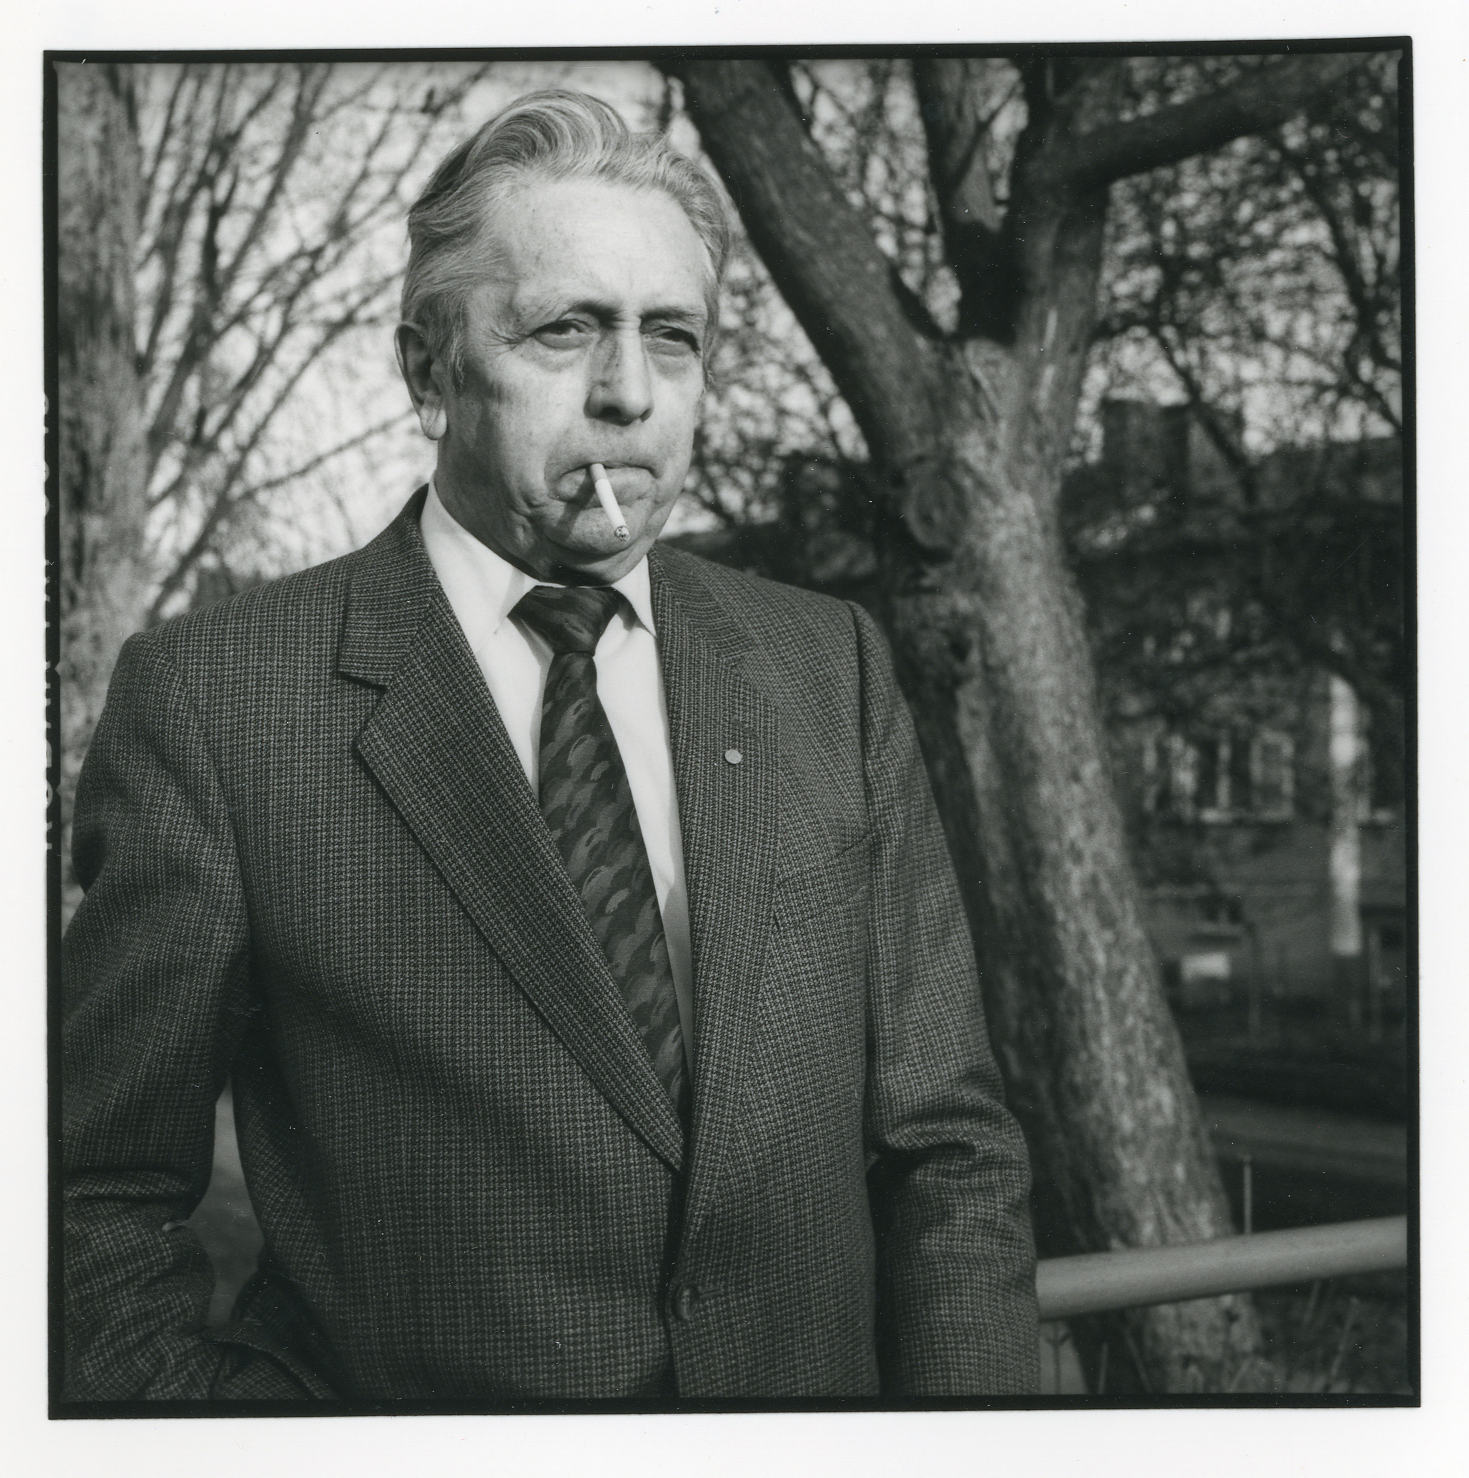 Henri Rinnen 					 					 					© Wolfgang Osterheld/Collection CNL